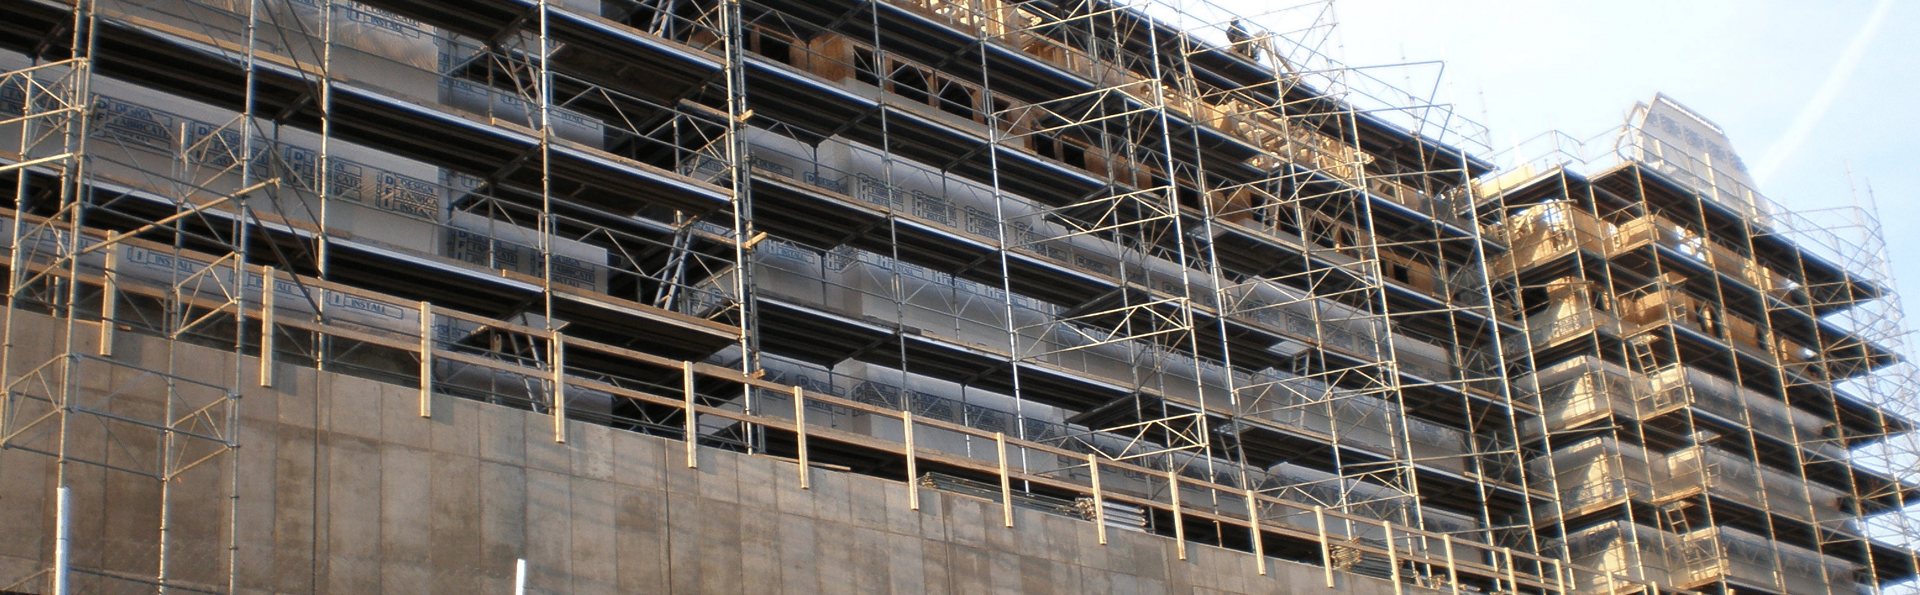 About Scaffolding Solutions